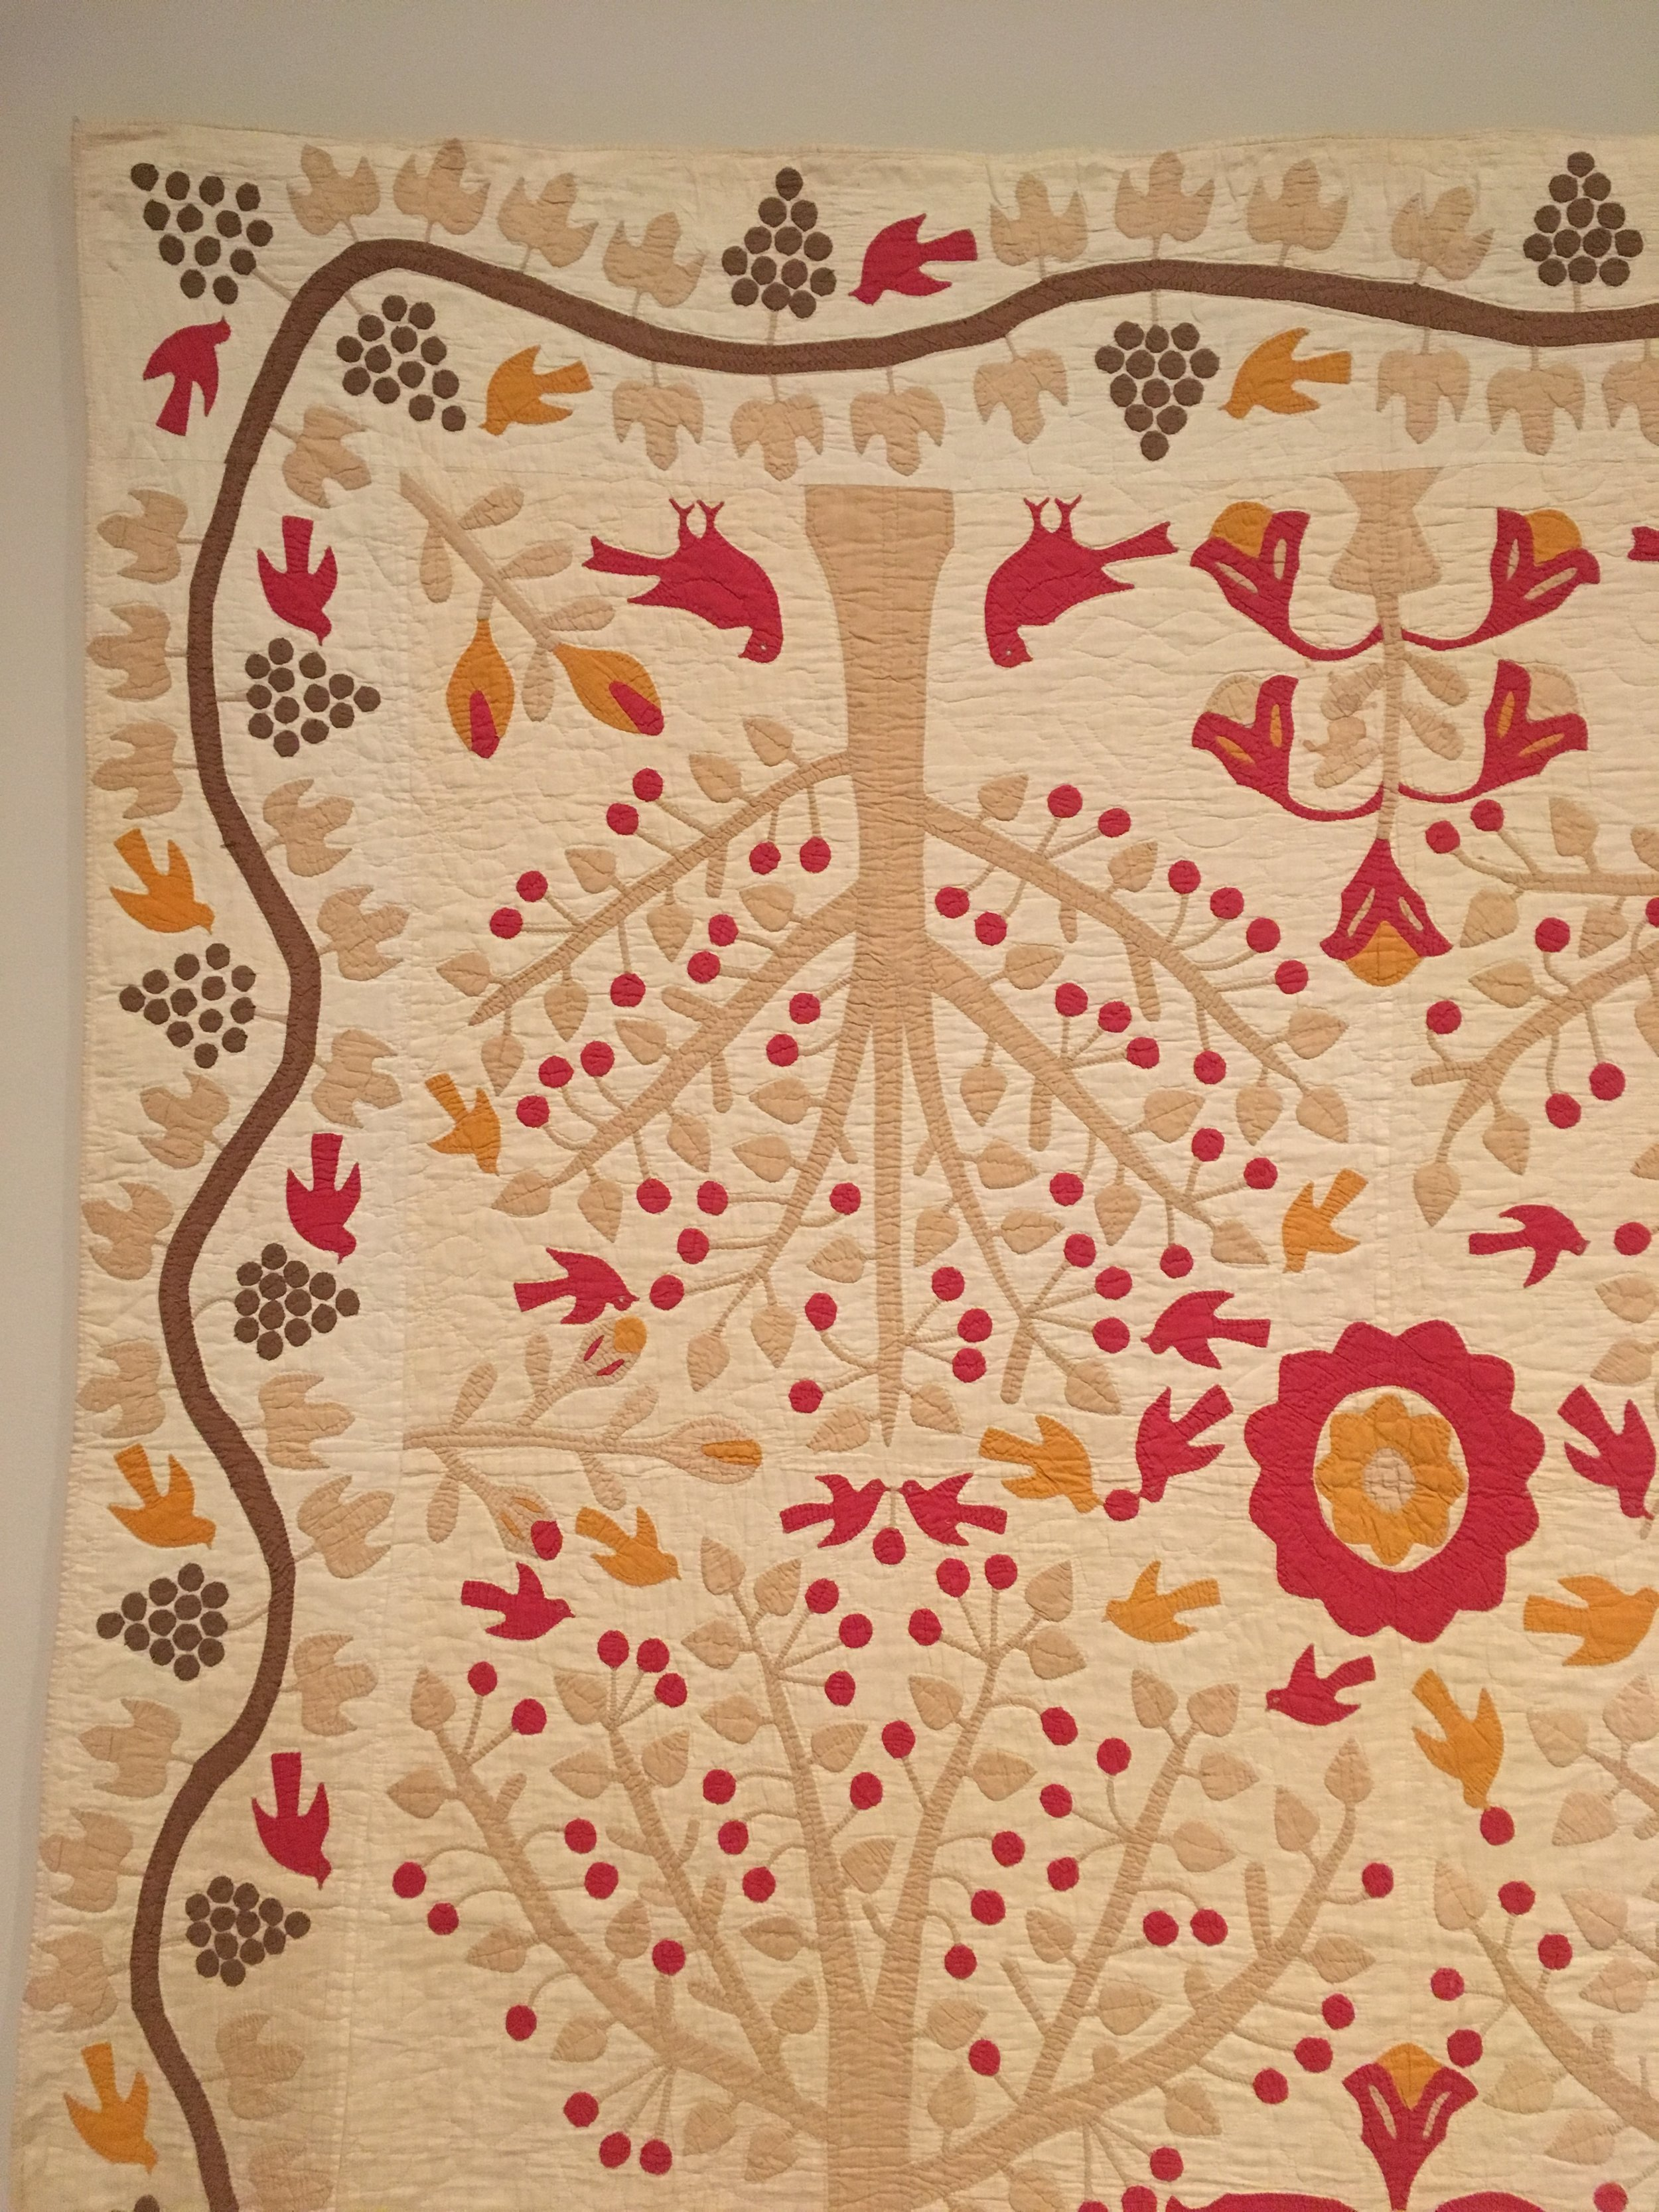 My favourite quilt from the Art Institute. I love the inverted and repeated images.